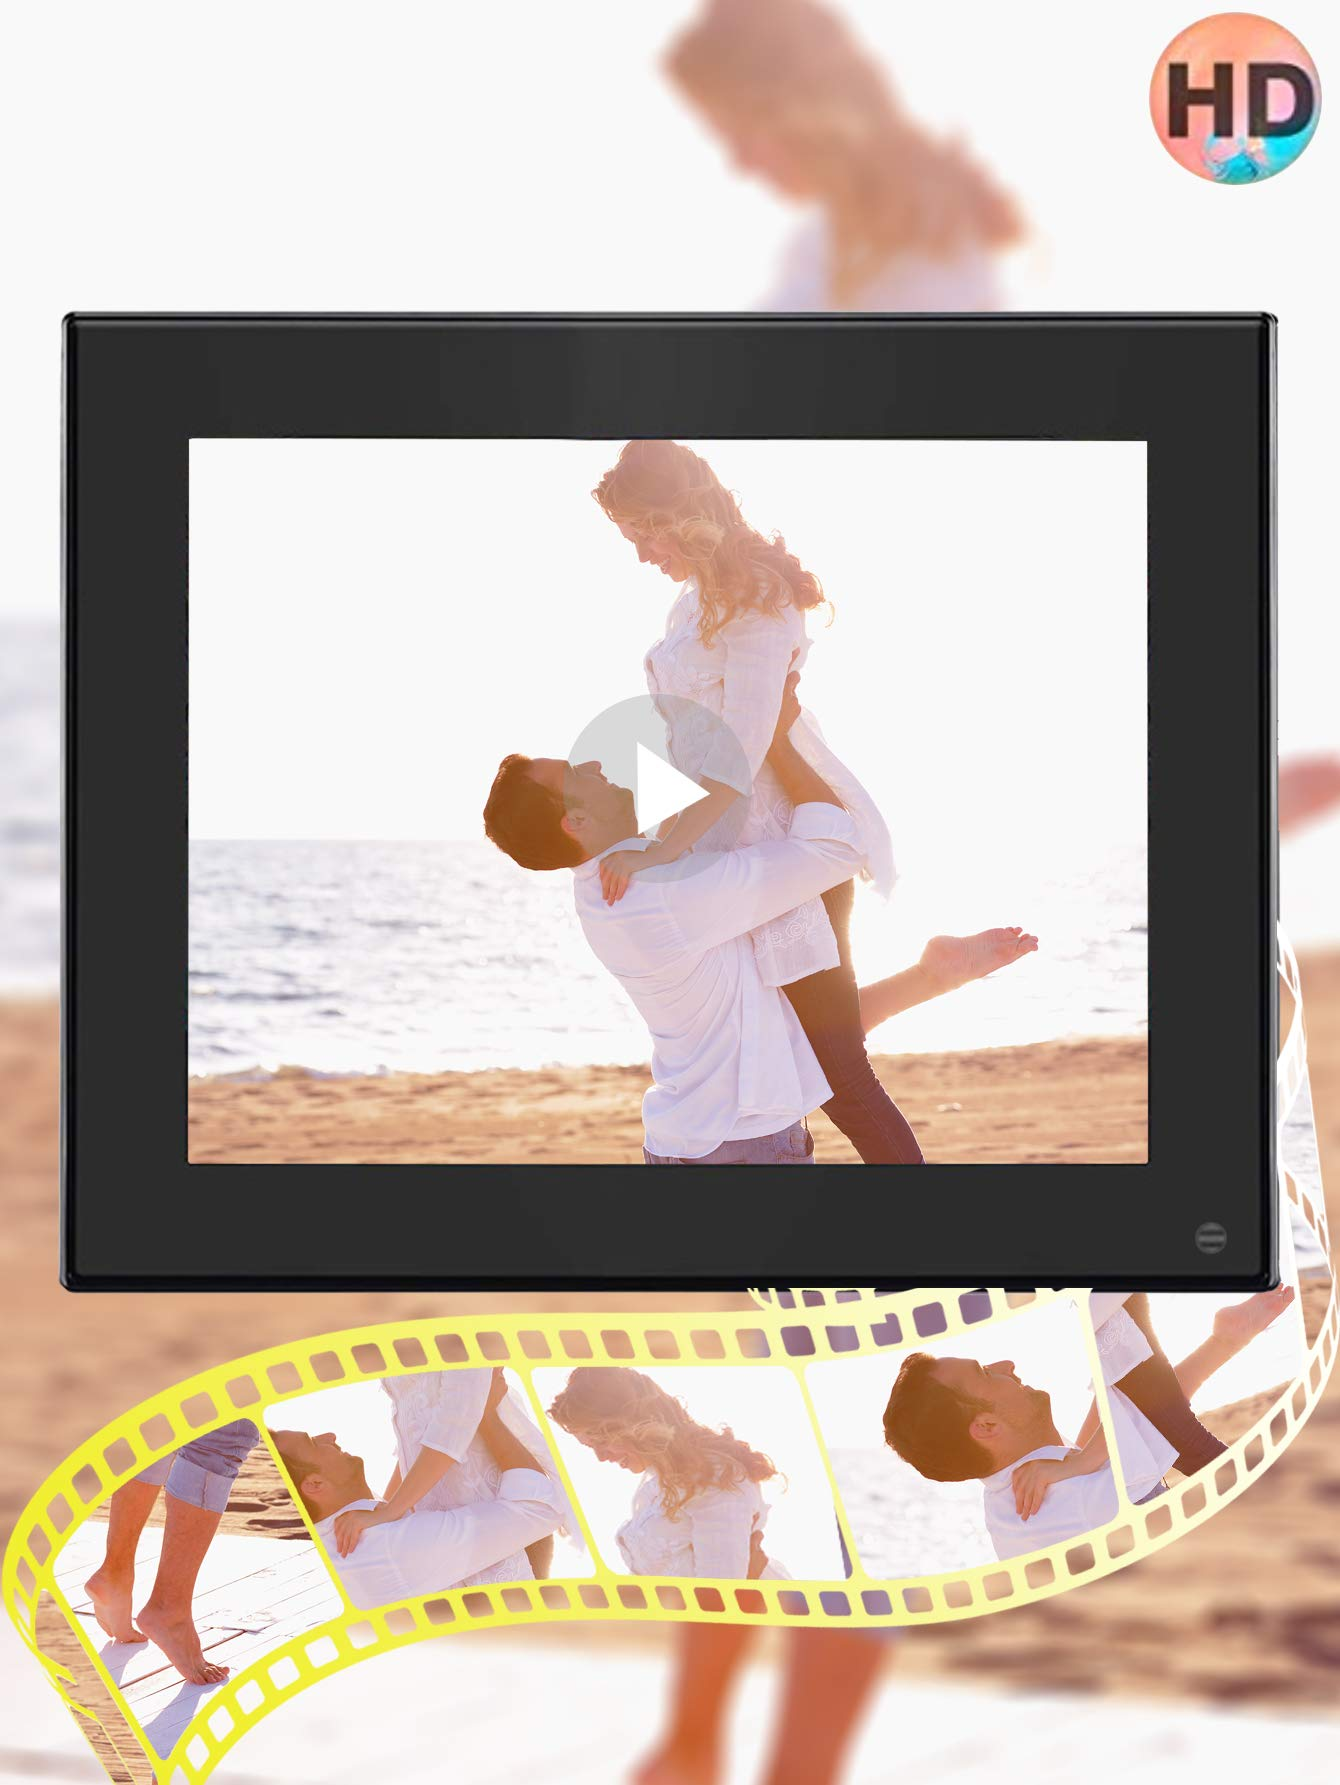 BSIMB Digital Photo Frame Digital Picture Frame 8 Inch 1024×768 Resolution Display with Calendar,Music,Video and USB,SD Card and Remote Control(M03 Black) by Bsimb (Image #4)